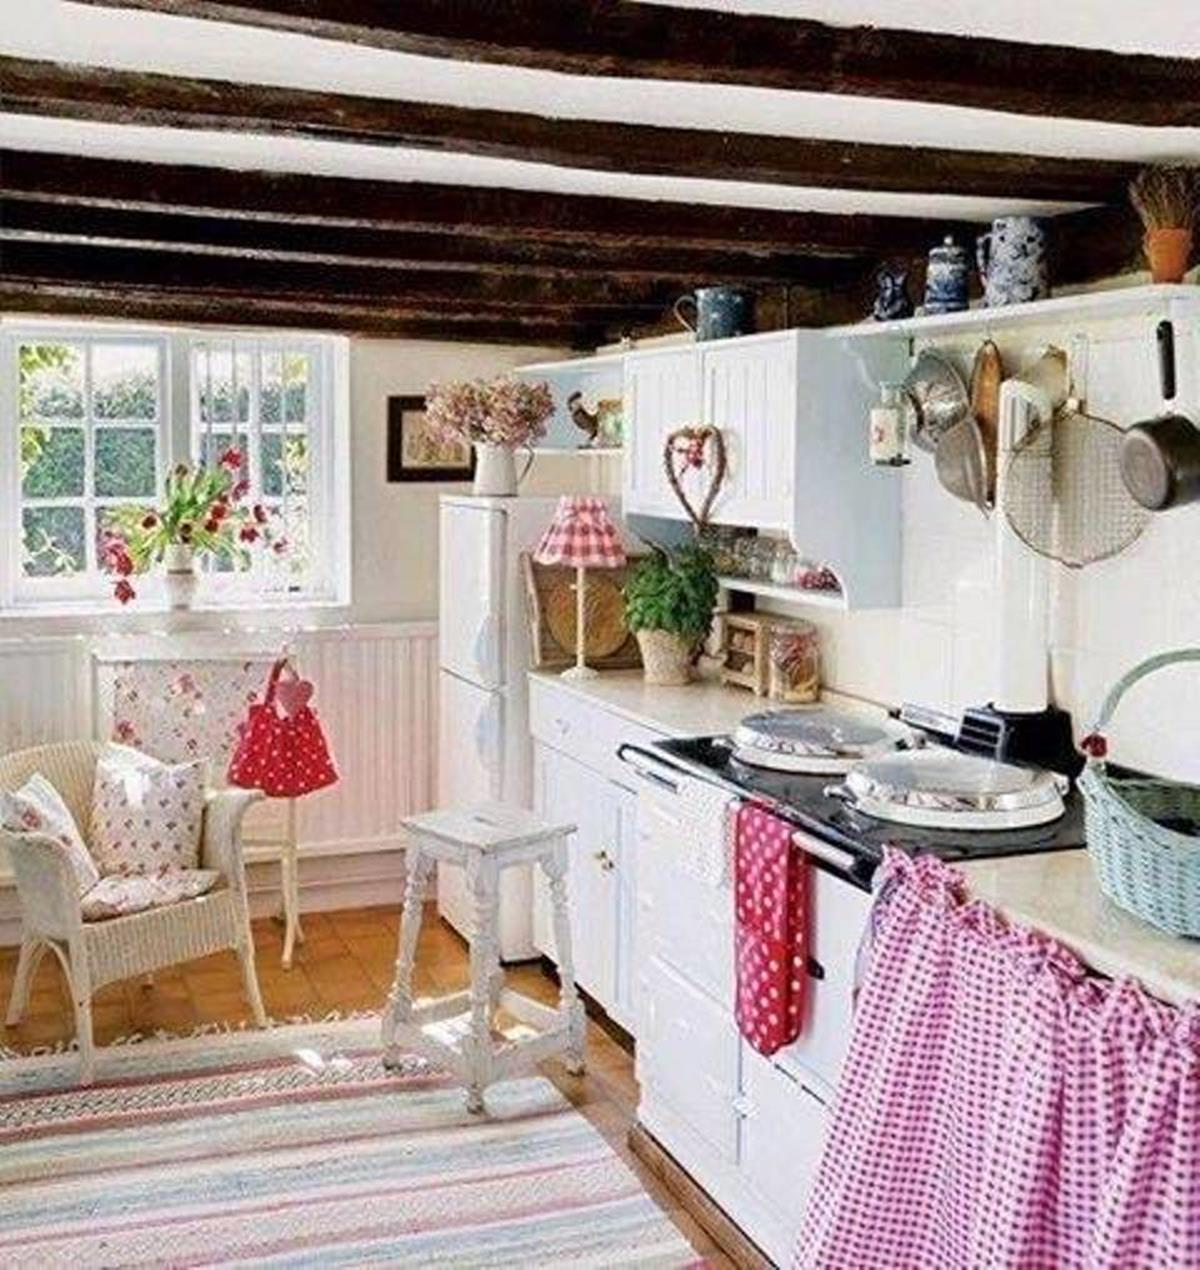 Small Country Kitchens Design and Decor Ideas 30